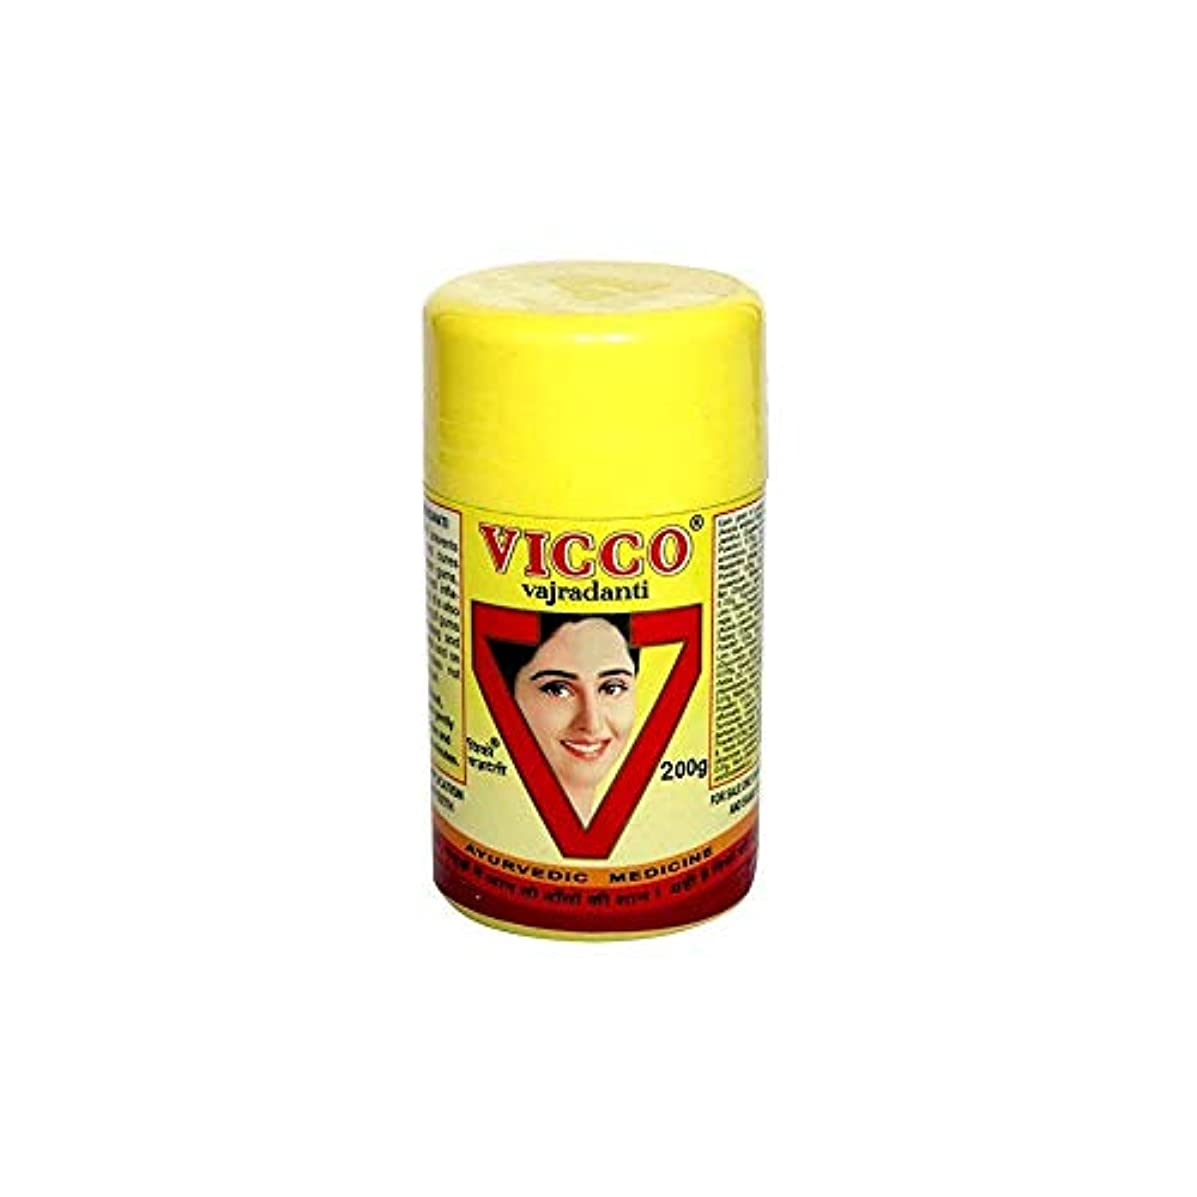 Vicco Vajradanti Ayurvedic Herbal Tooth Powder 200g Prevents Tooth Decay Cures by Vicco Lab